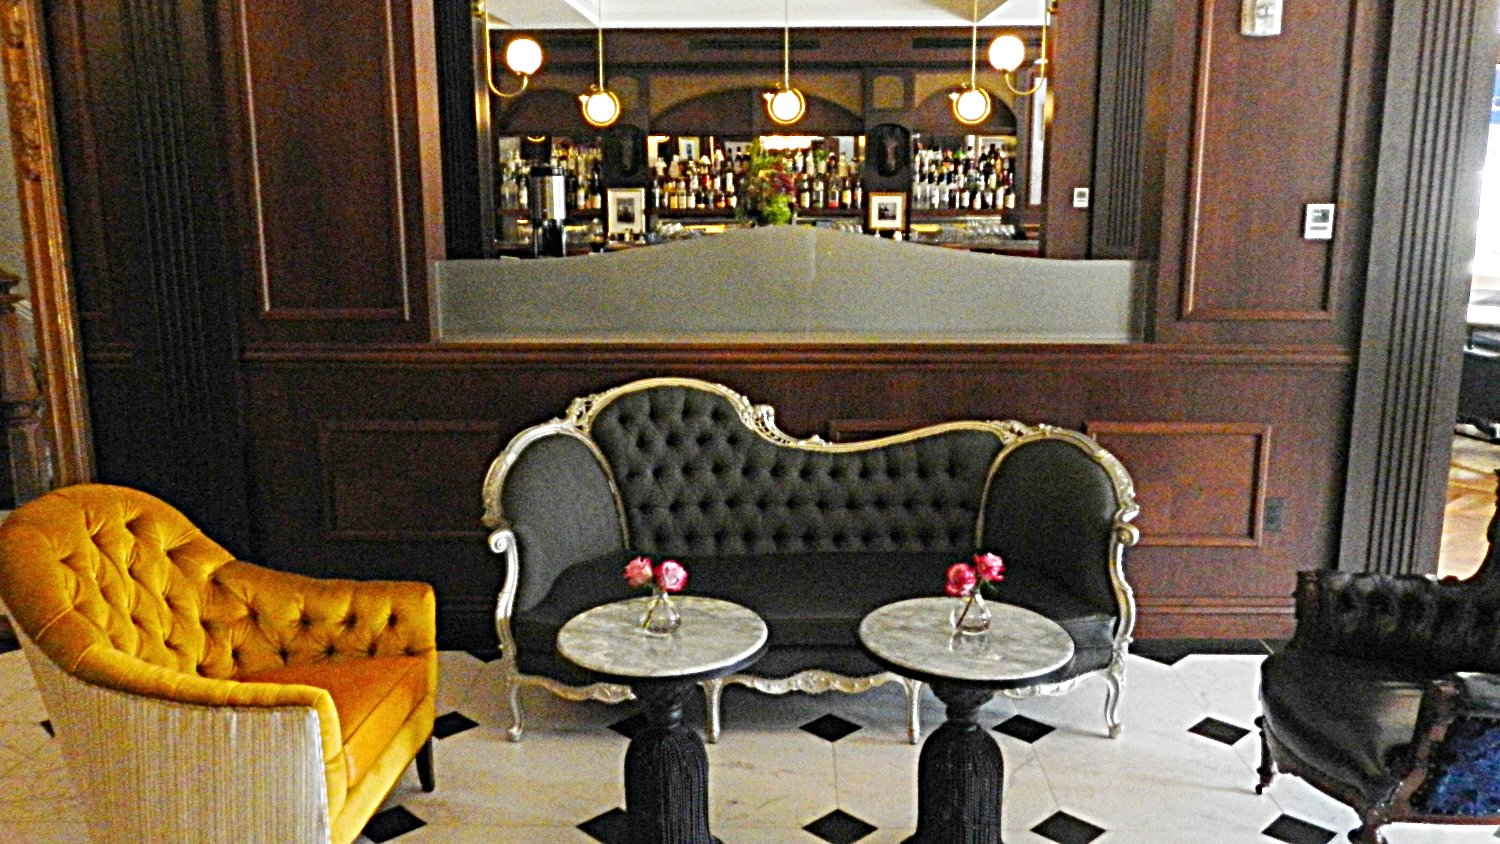 Much of the furnishings at The Adelphi Hotel are original pieces of the hotel, refinished